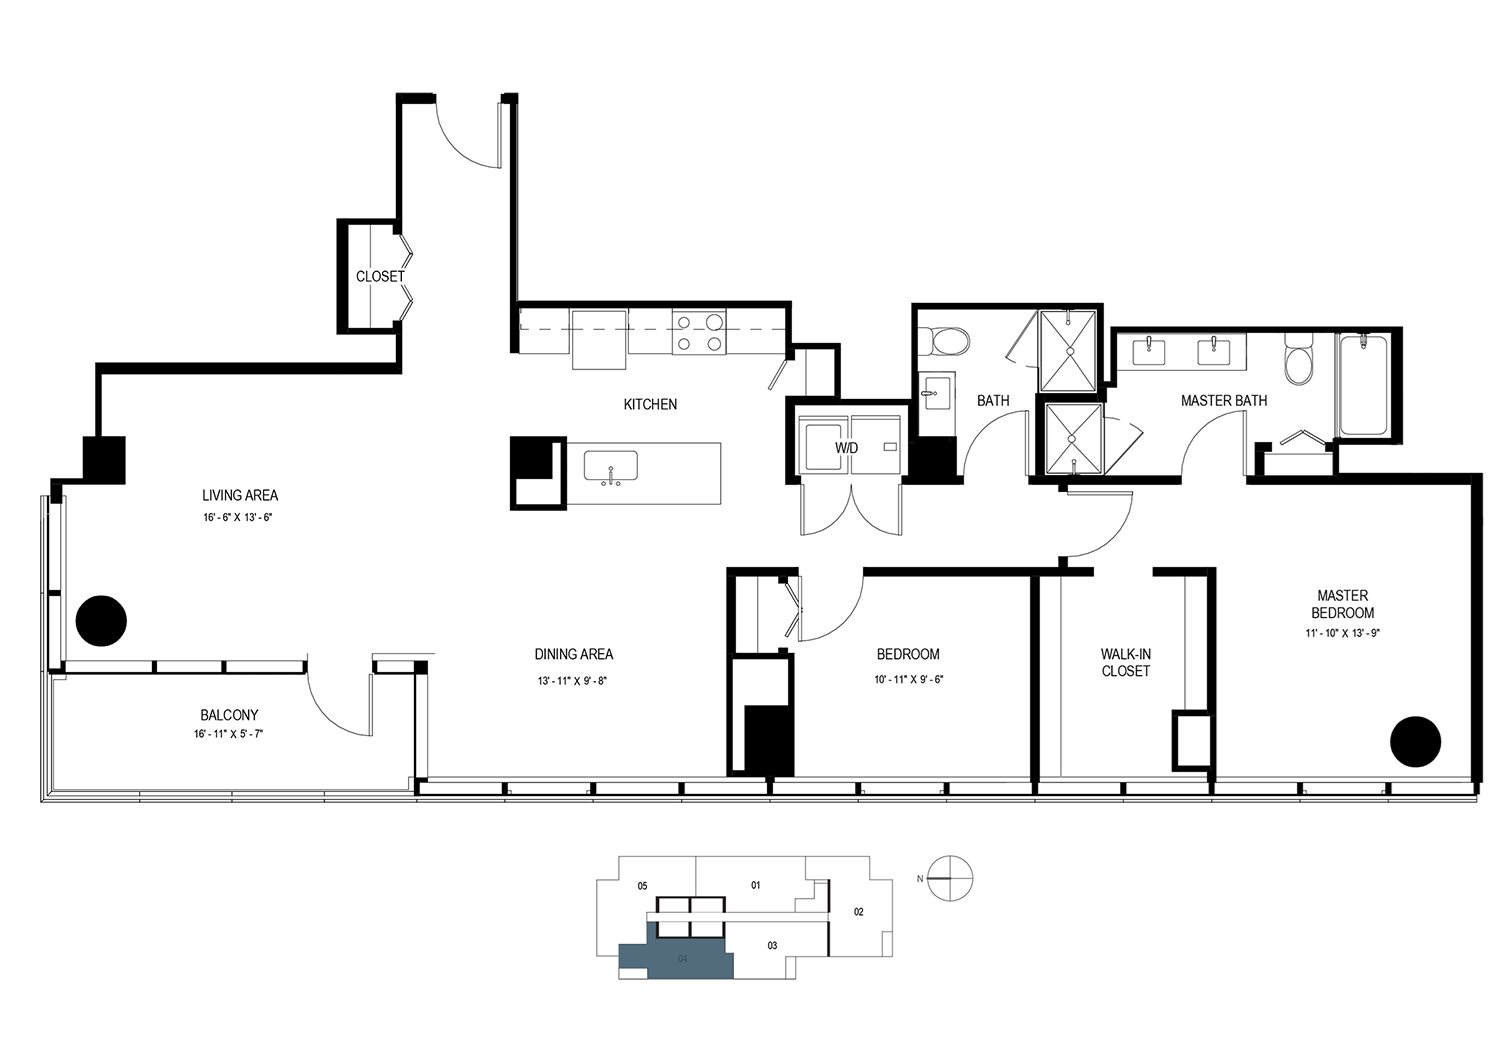 Two Bedroom Penthouse (1431 sf) Floor Plan 23